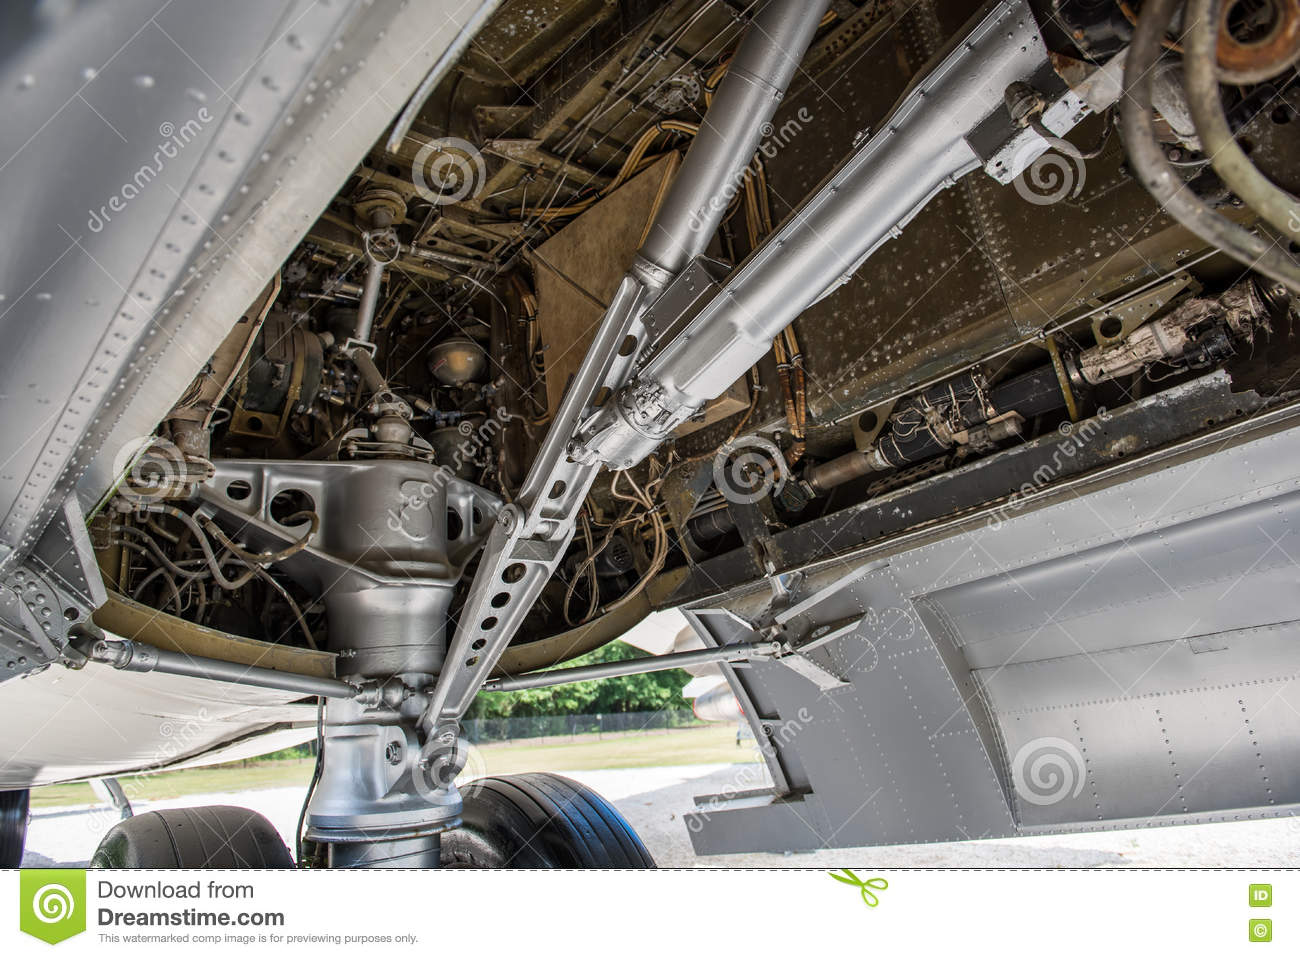 Inside the Landing Gear Compartment